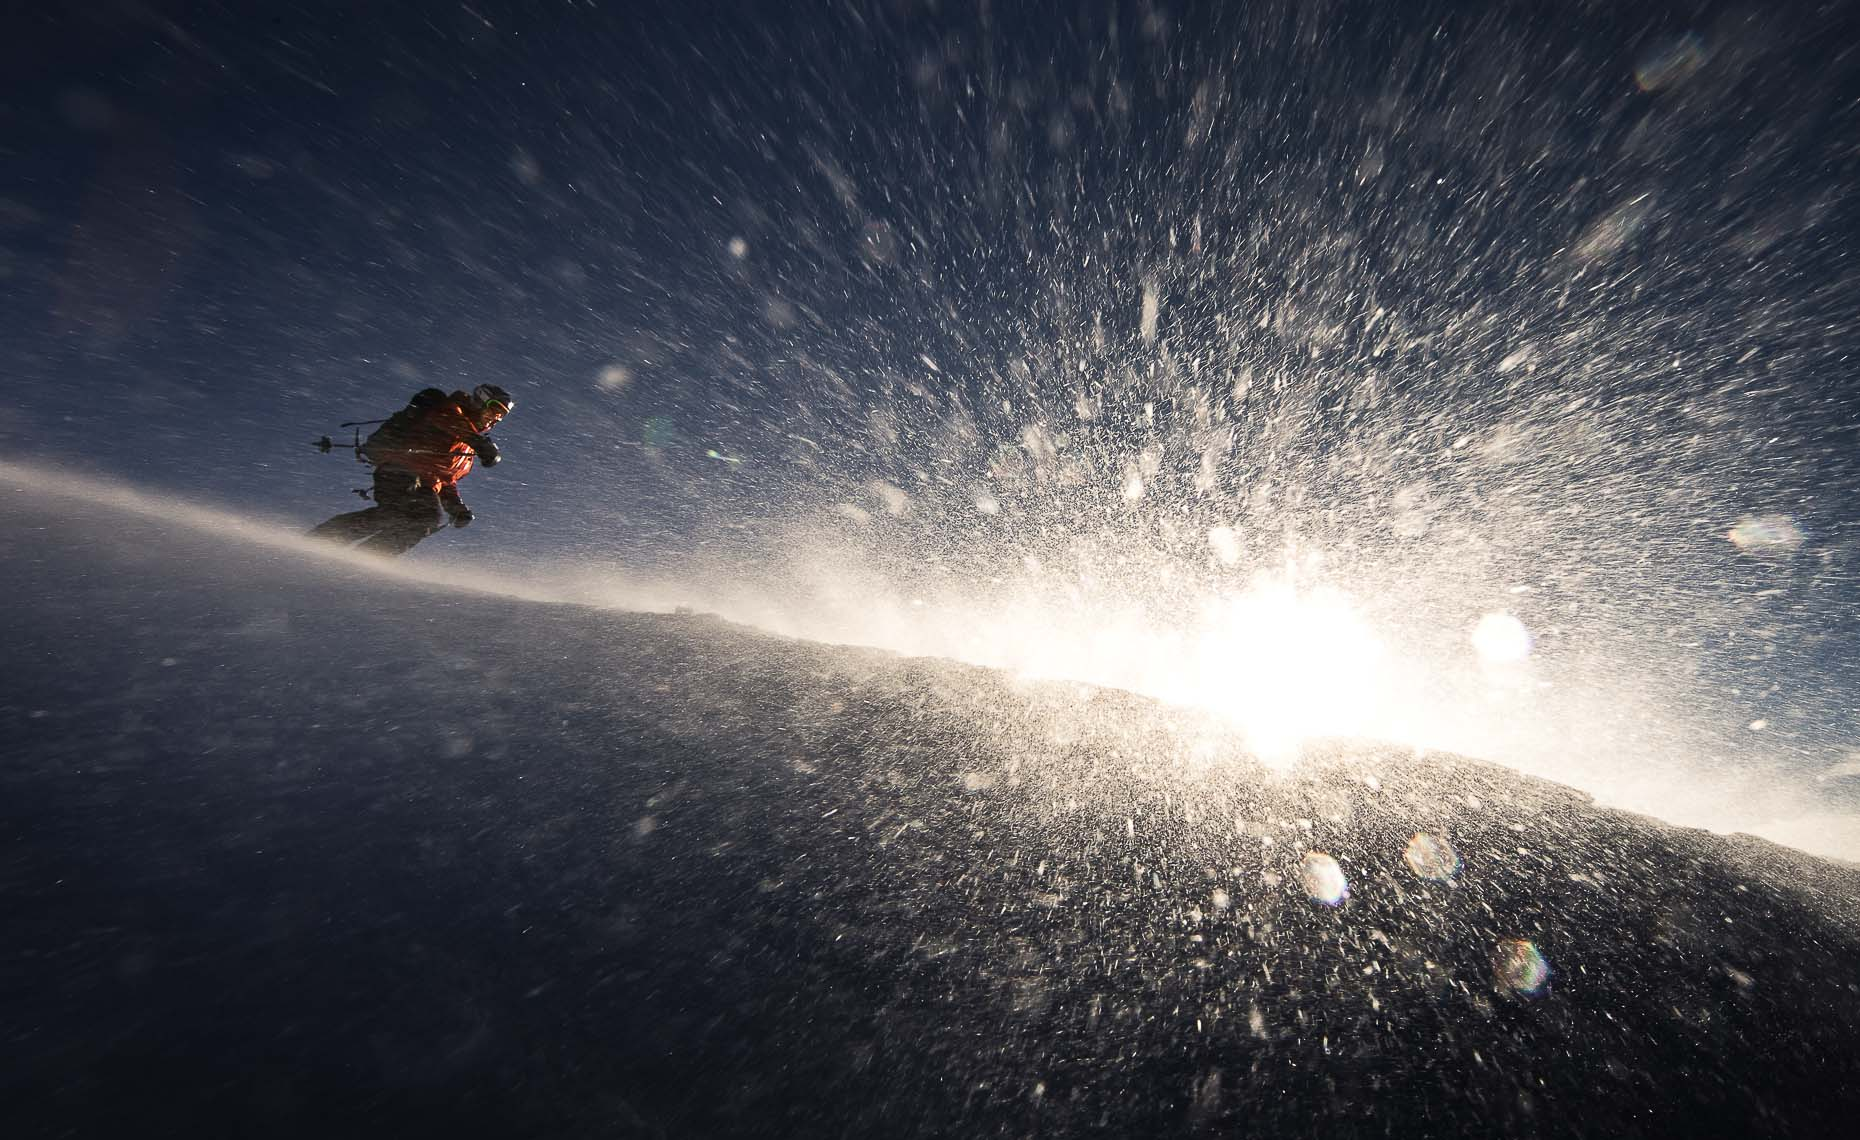 deep winter ski photographer from vancouver